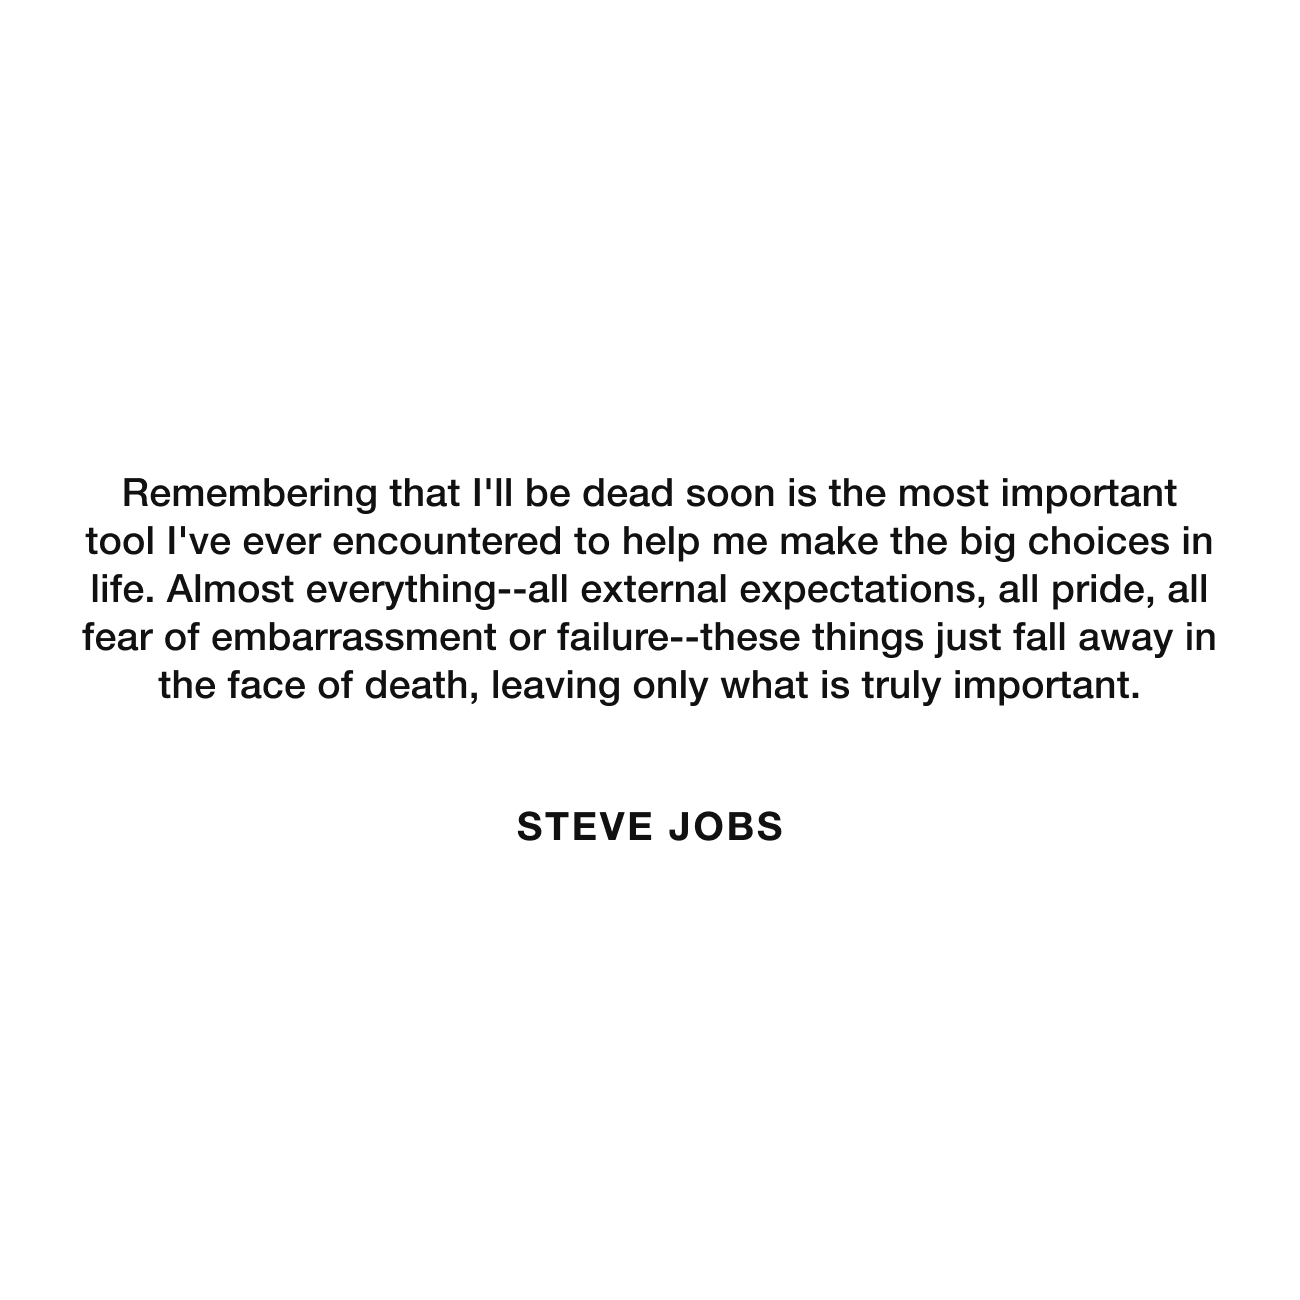 Steve Jobs Memento Mori Quote - Stoic Reflections